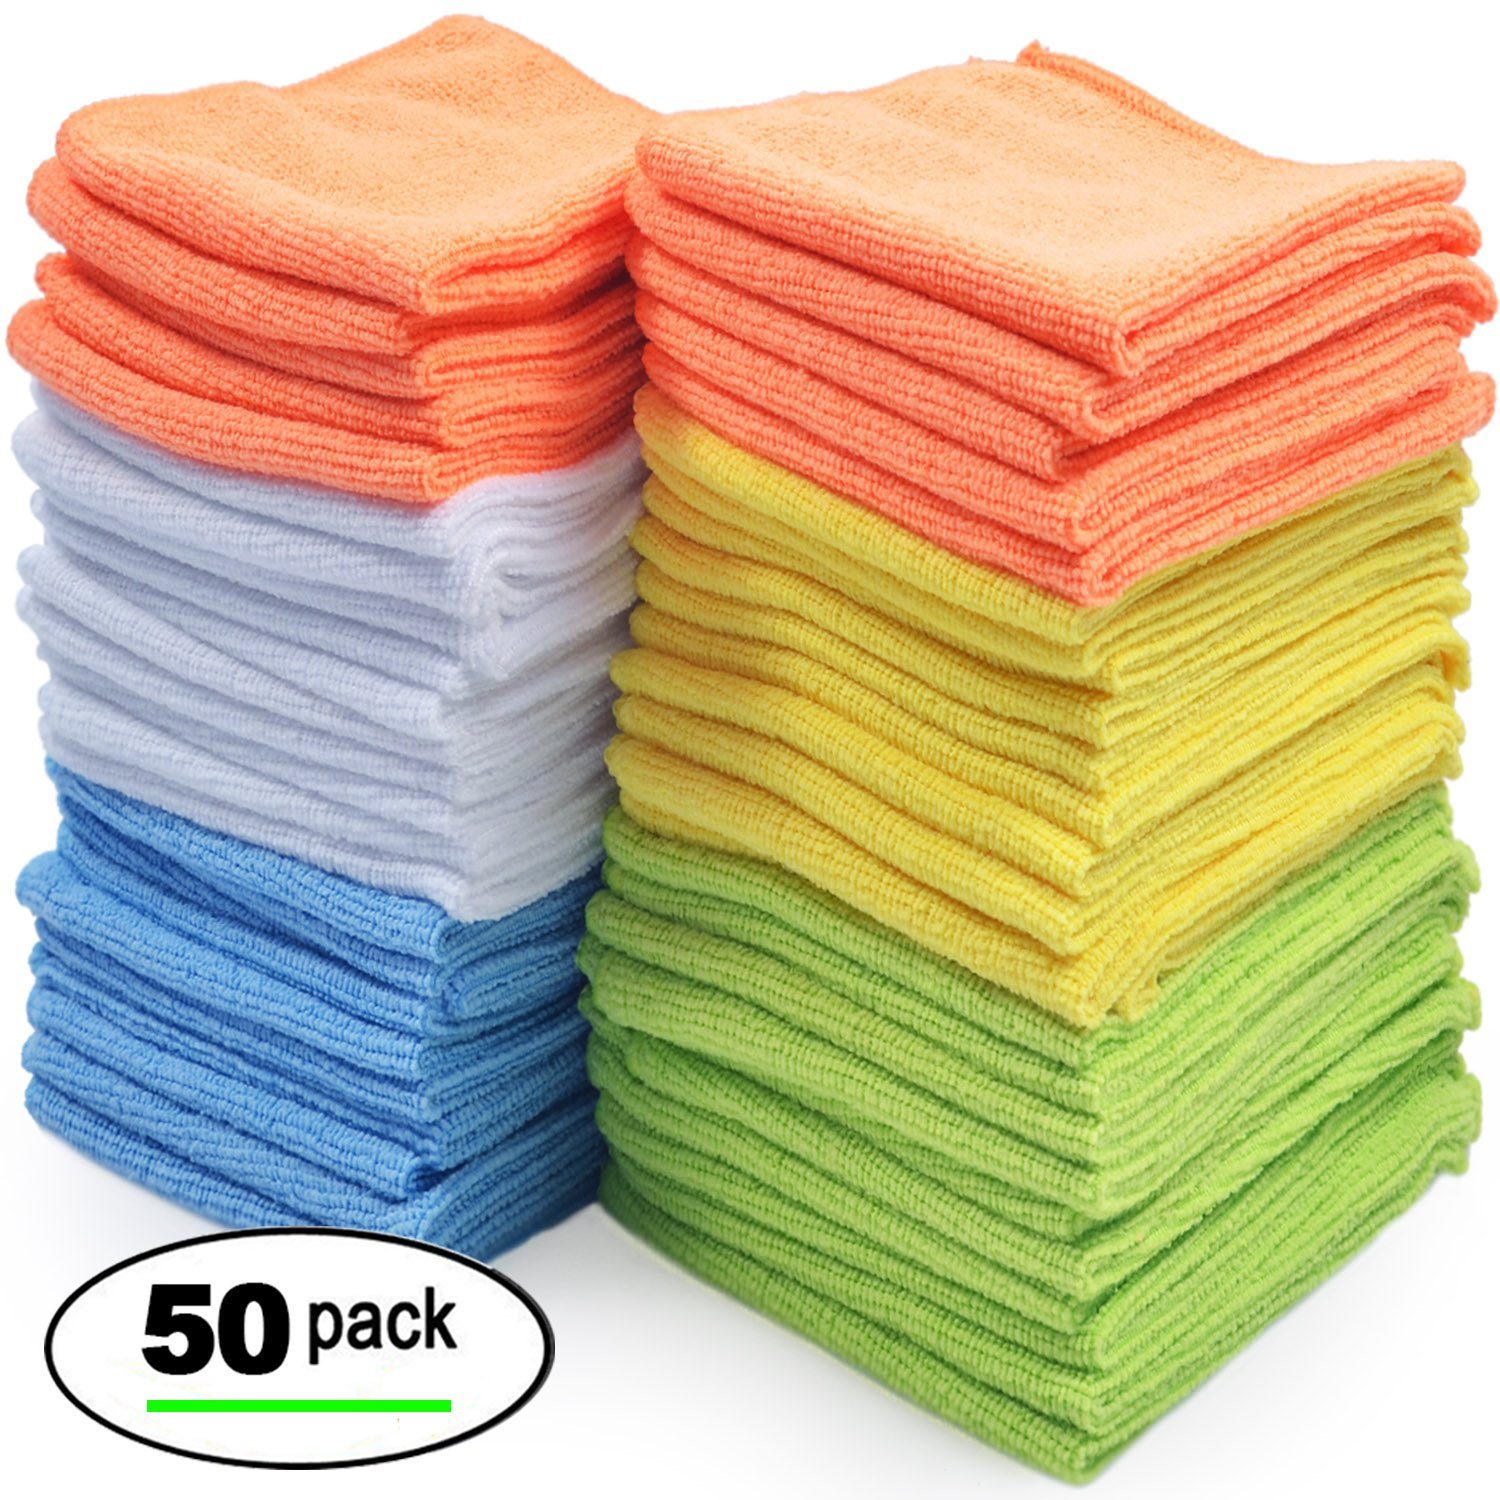 Best Microfiber Cleaning Cloths – Pack of 50 Towels SYNCHKG088868